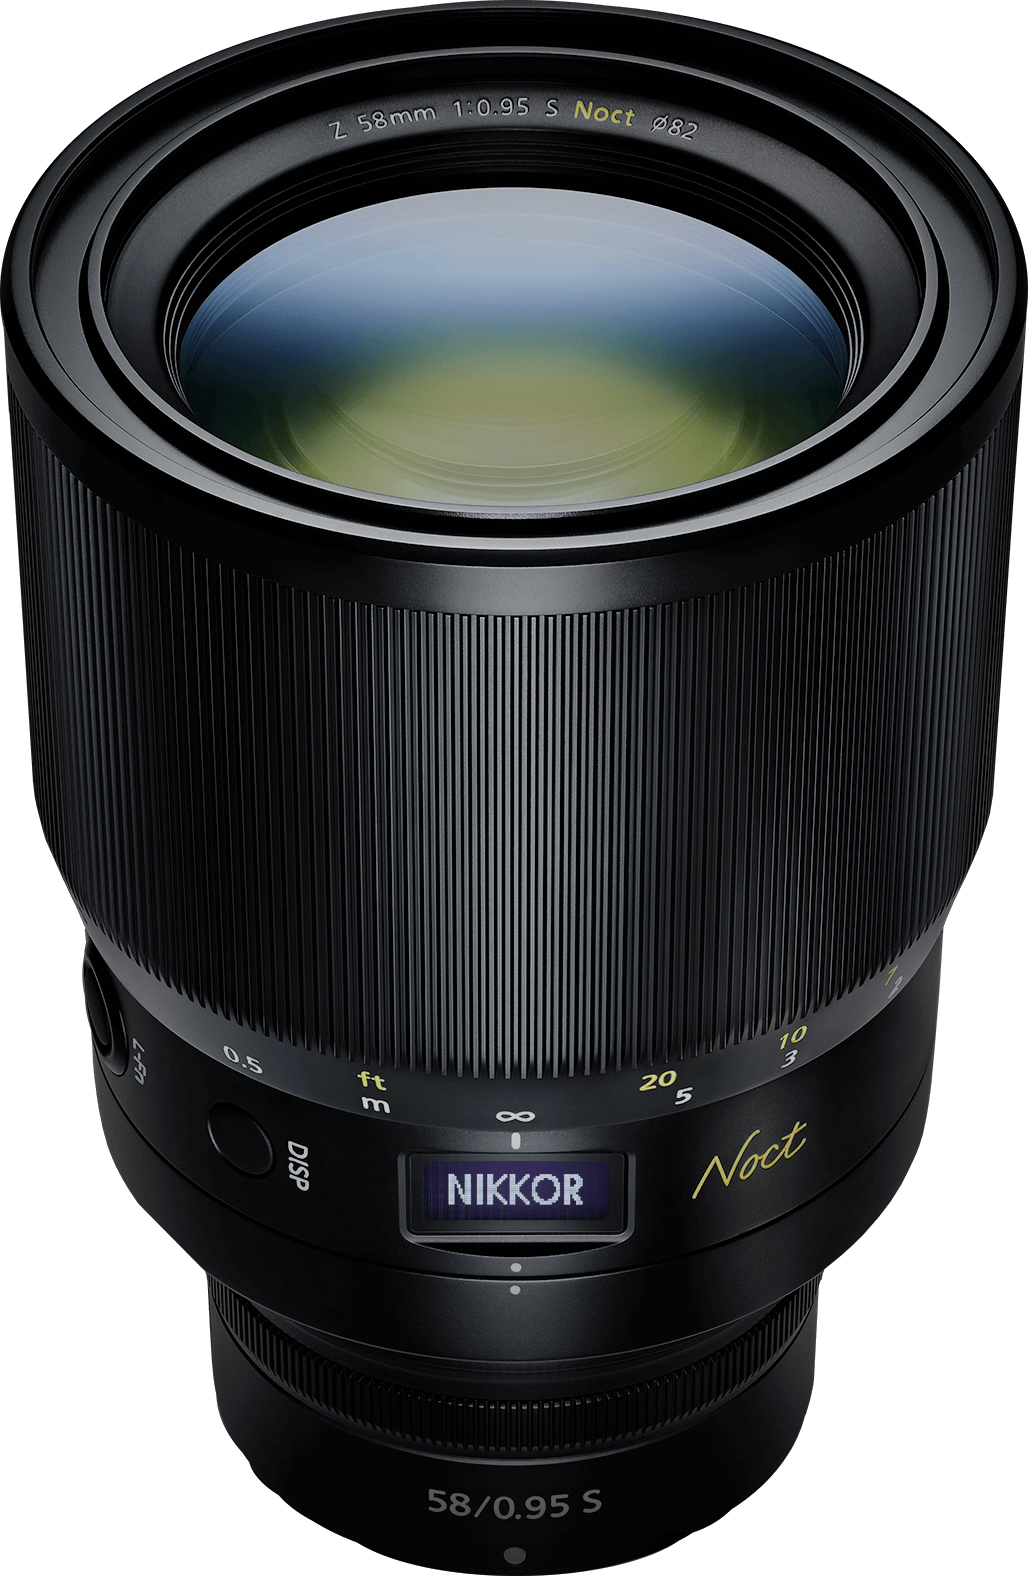 Product photo of NIKKOR Z 58mm f/0.95 S Noct lens